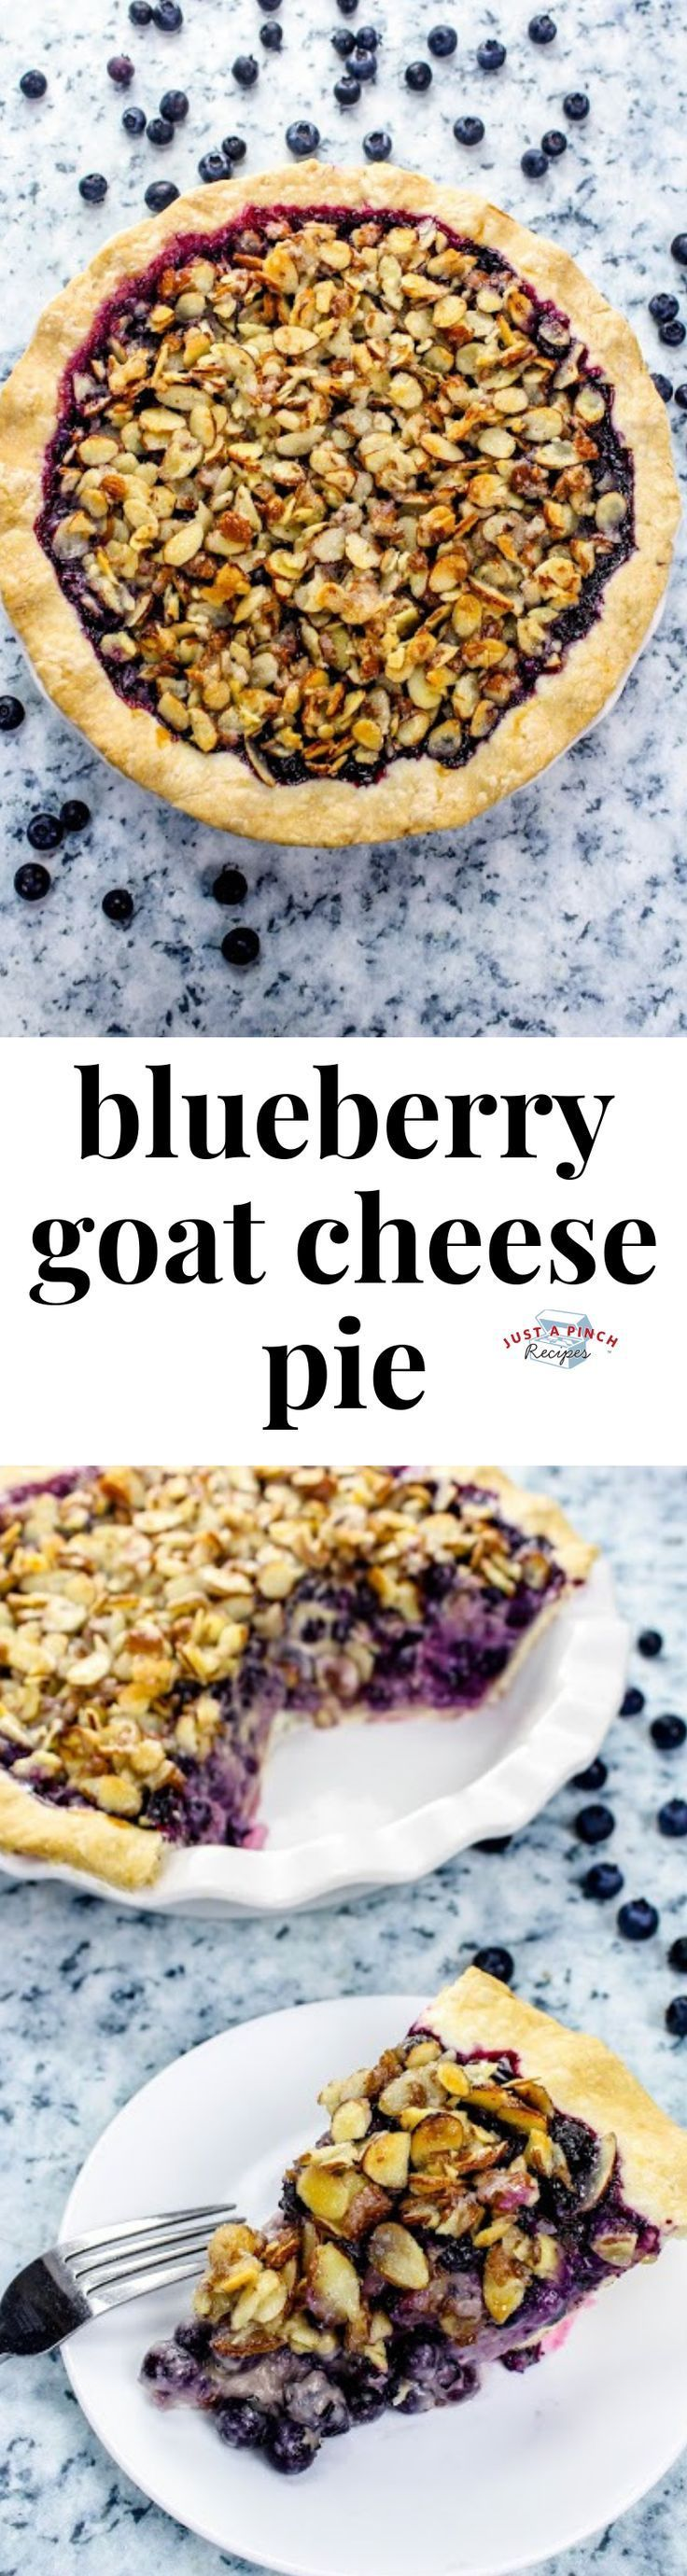 Goat Cheese Pie  - What's for Dessert? -